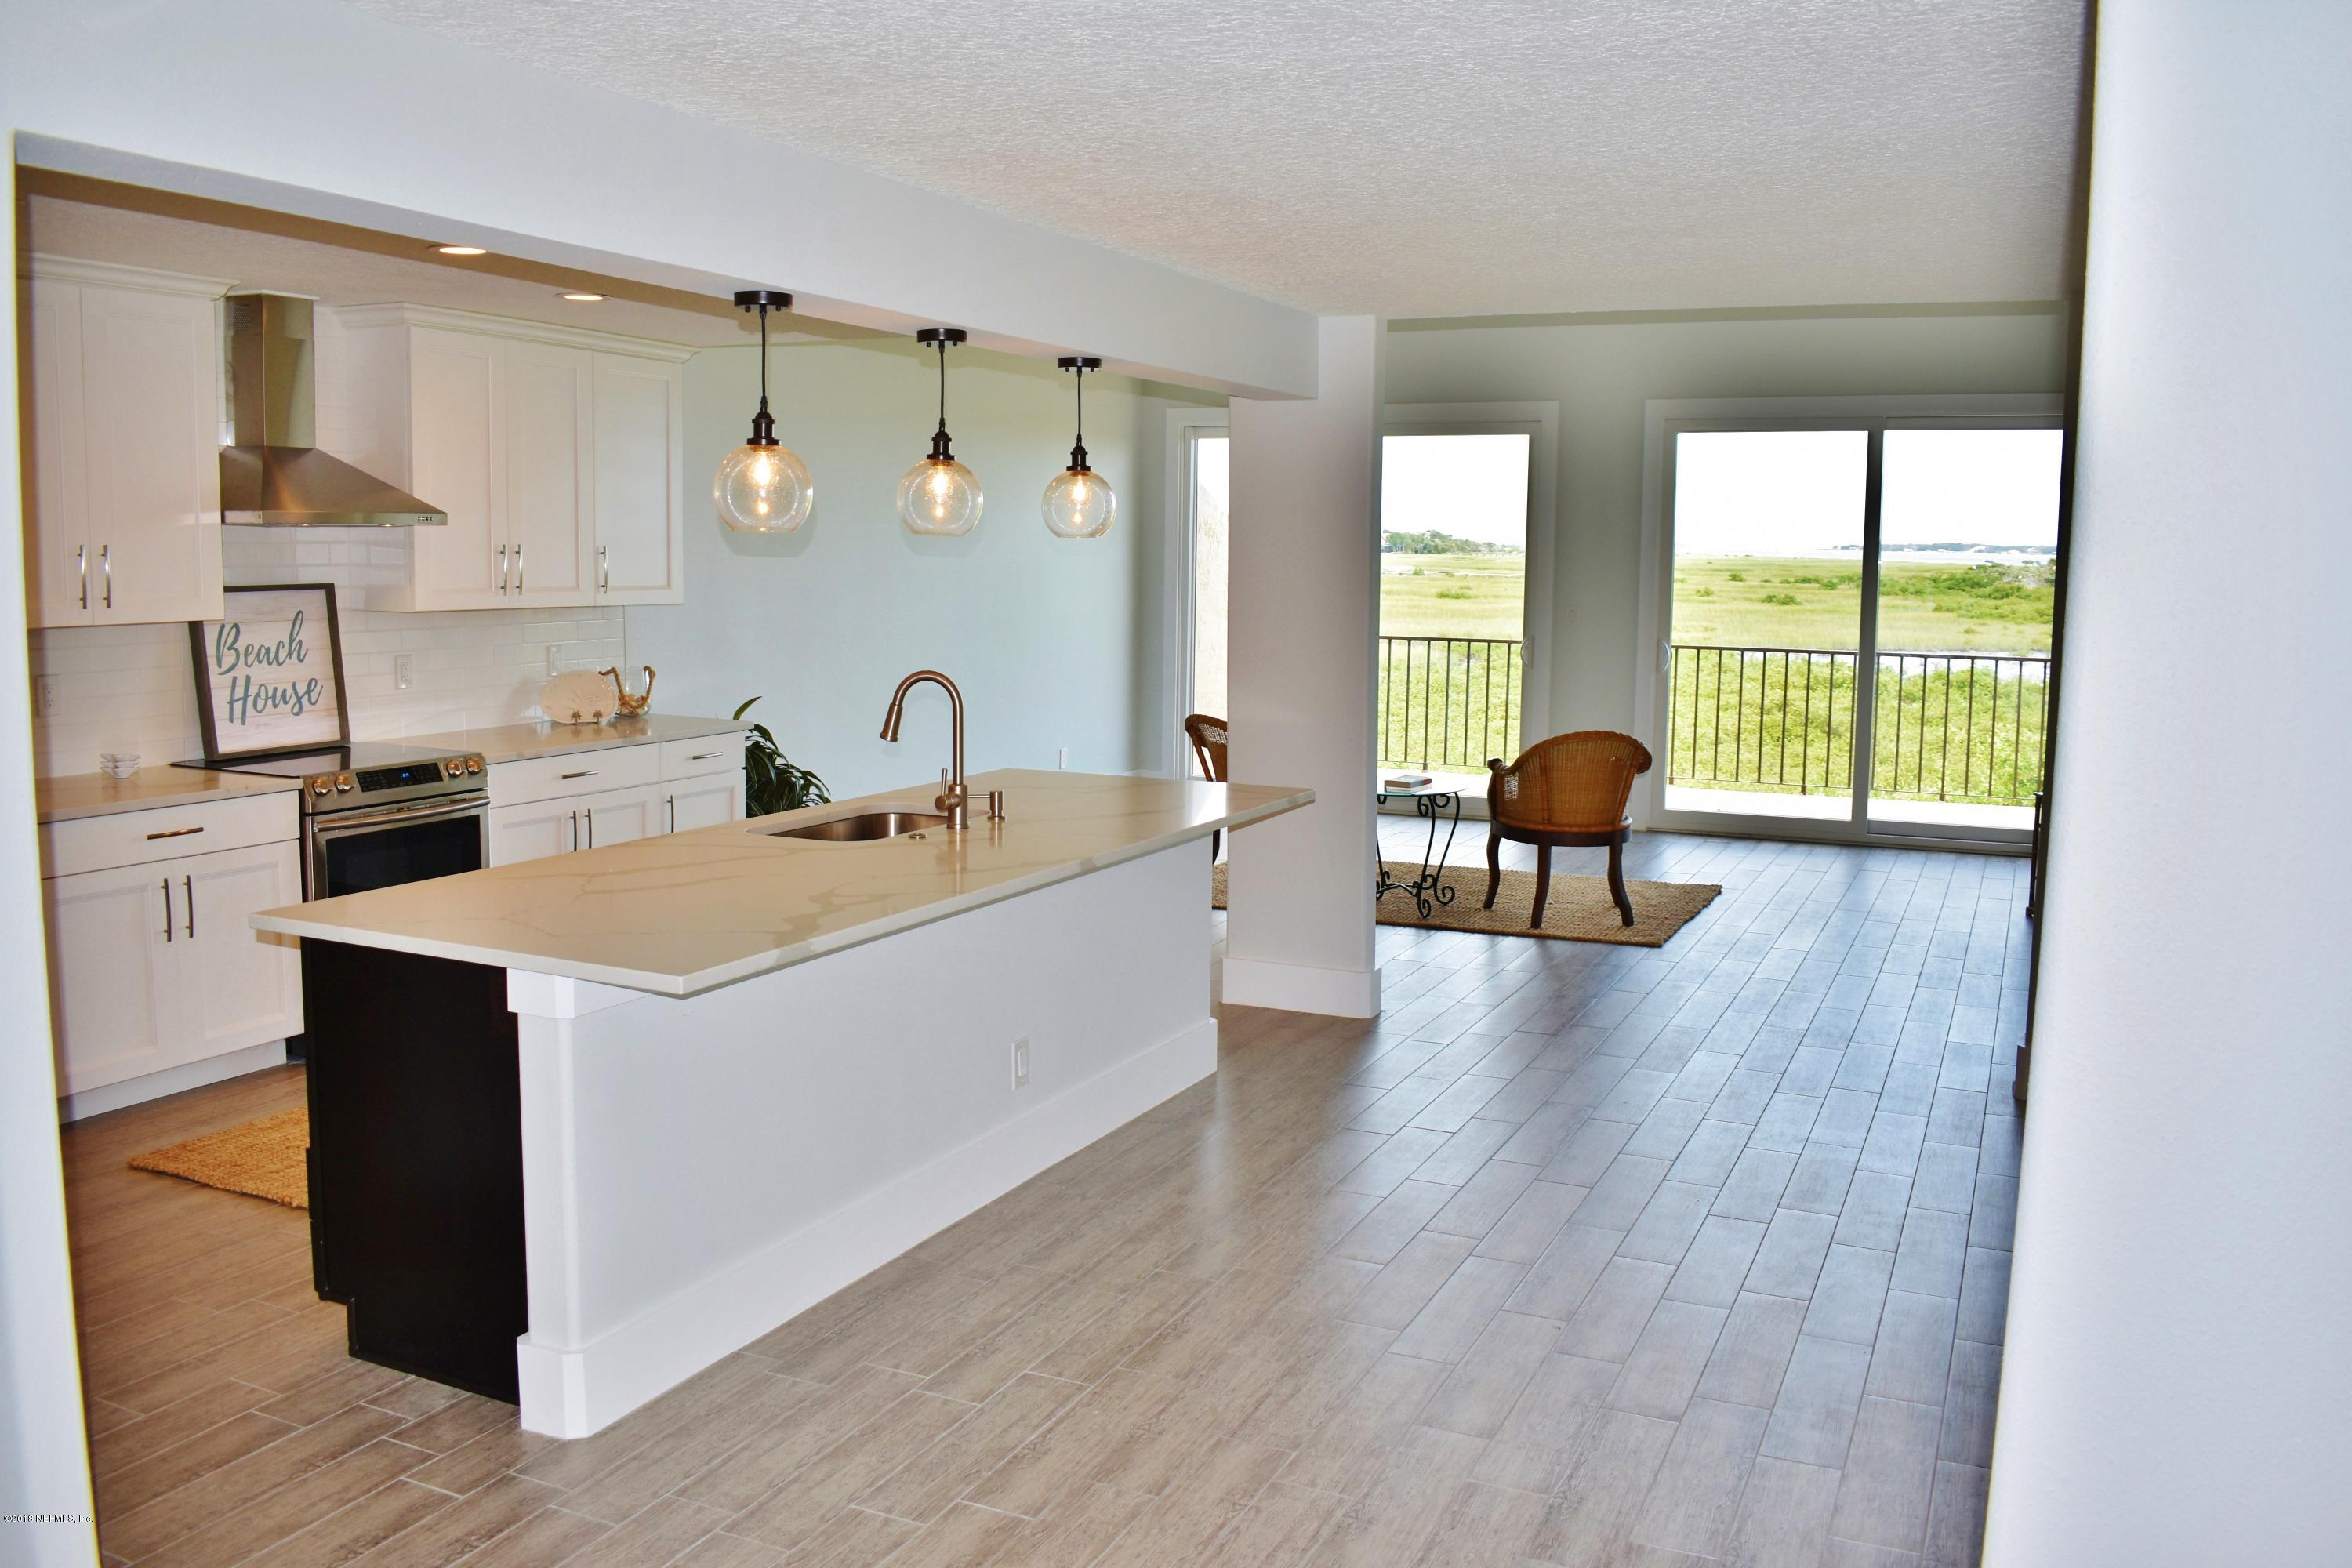 3429 HARBOR, ST AUGUSTINE, FLORIDA 32084, 3 Bedrooms Bedrooms, ,3 BathroomsBathrooms,Condo,For sale,HARBOR,1020152